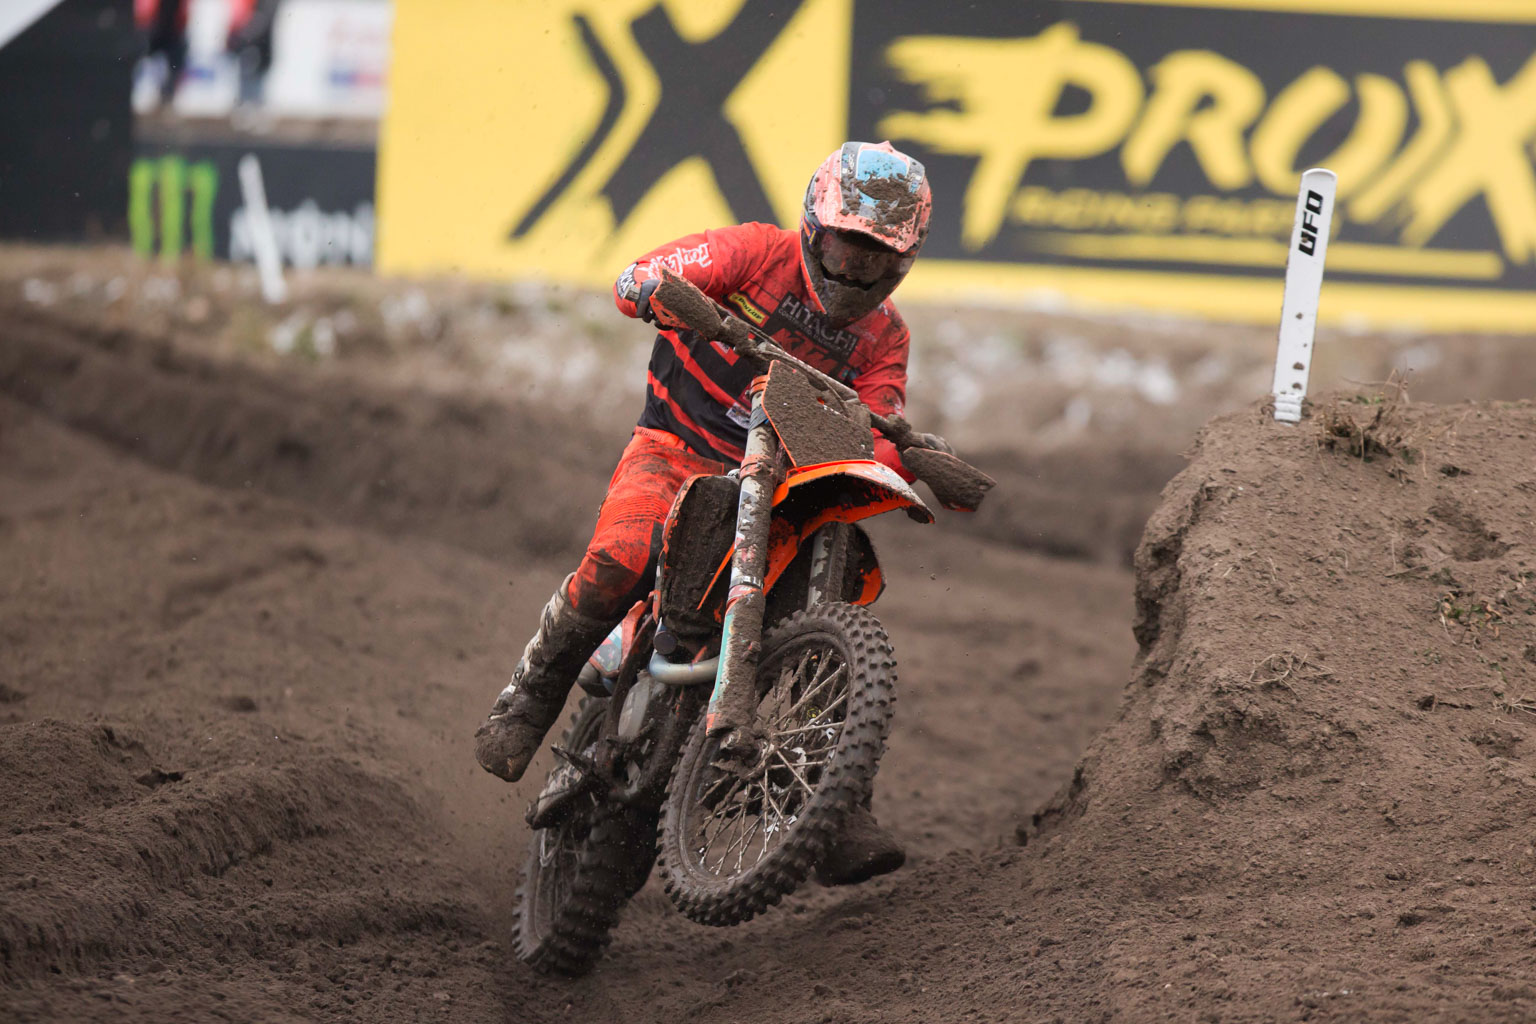 British champ Irwin took a 19th place for two world championship points